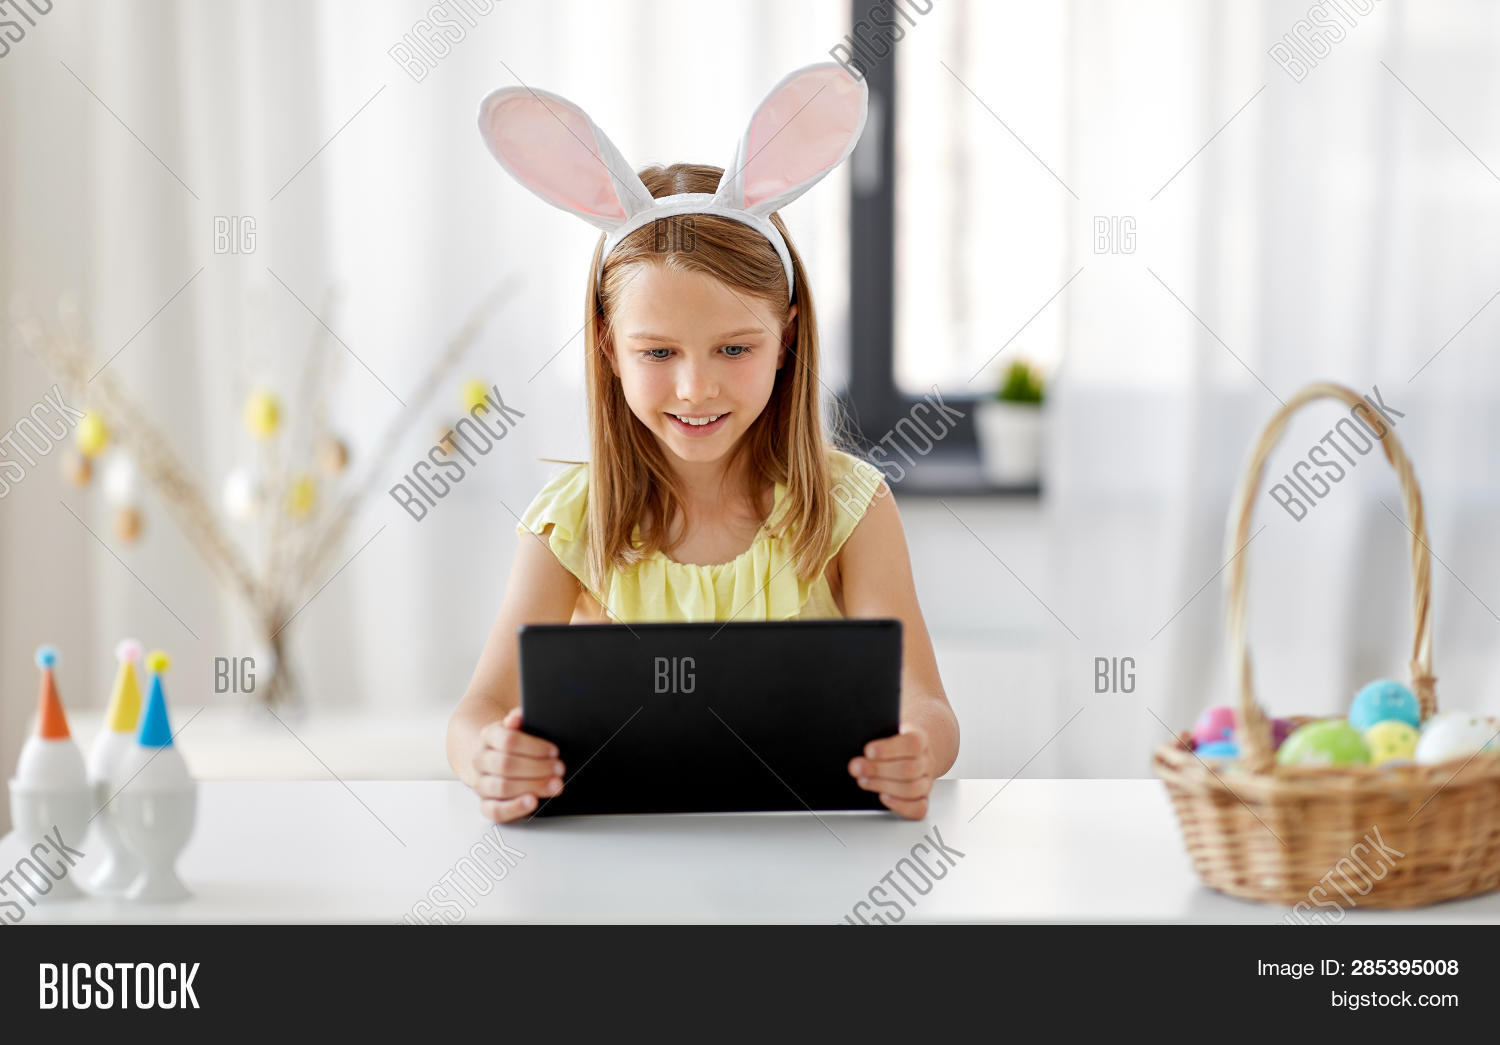 Easter, Holidays Image & Photo (Free Trial) | Bigstock